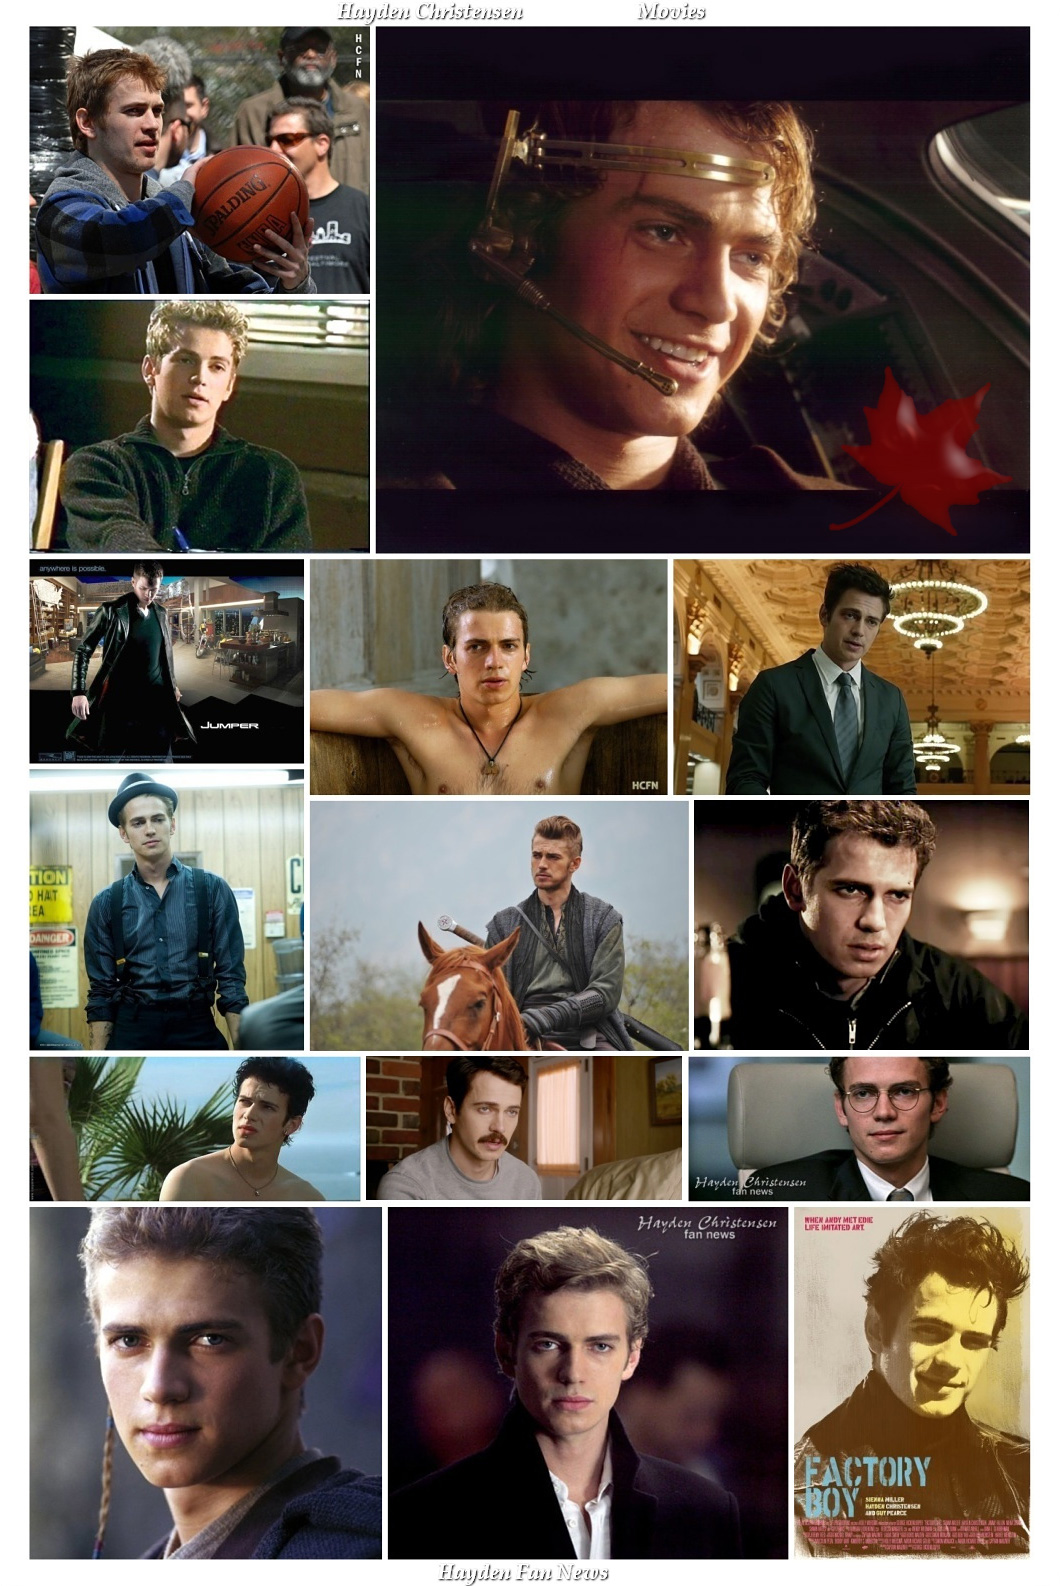 Hayden Christensen Fan News 10th Anniversary October 18, 2016.